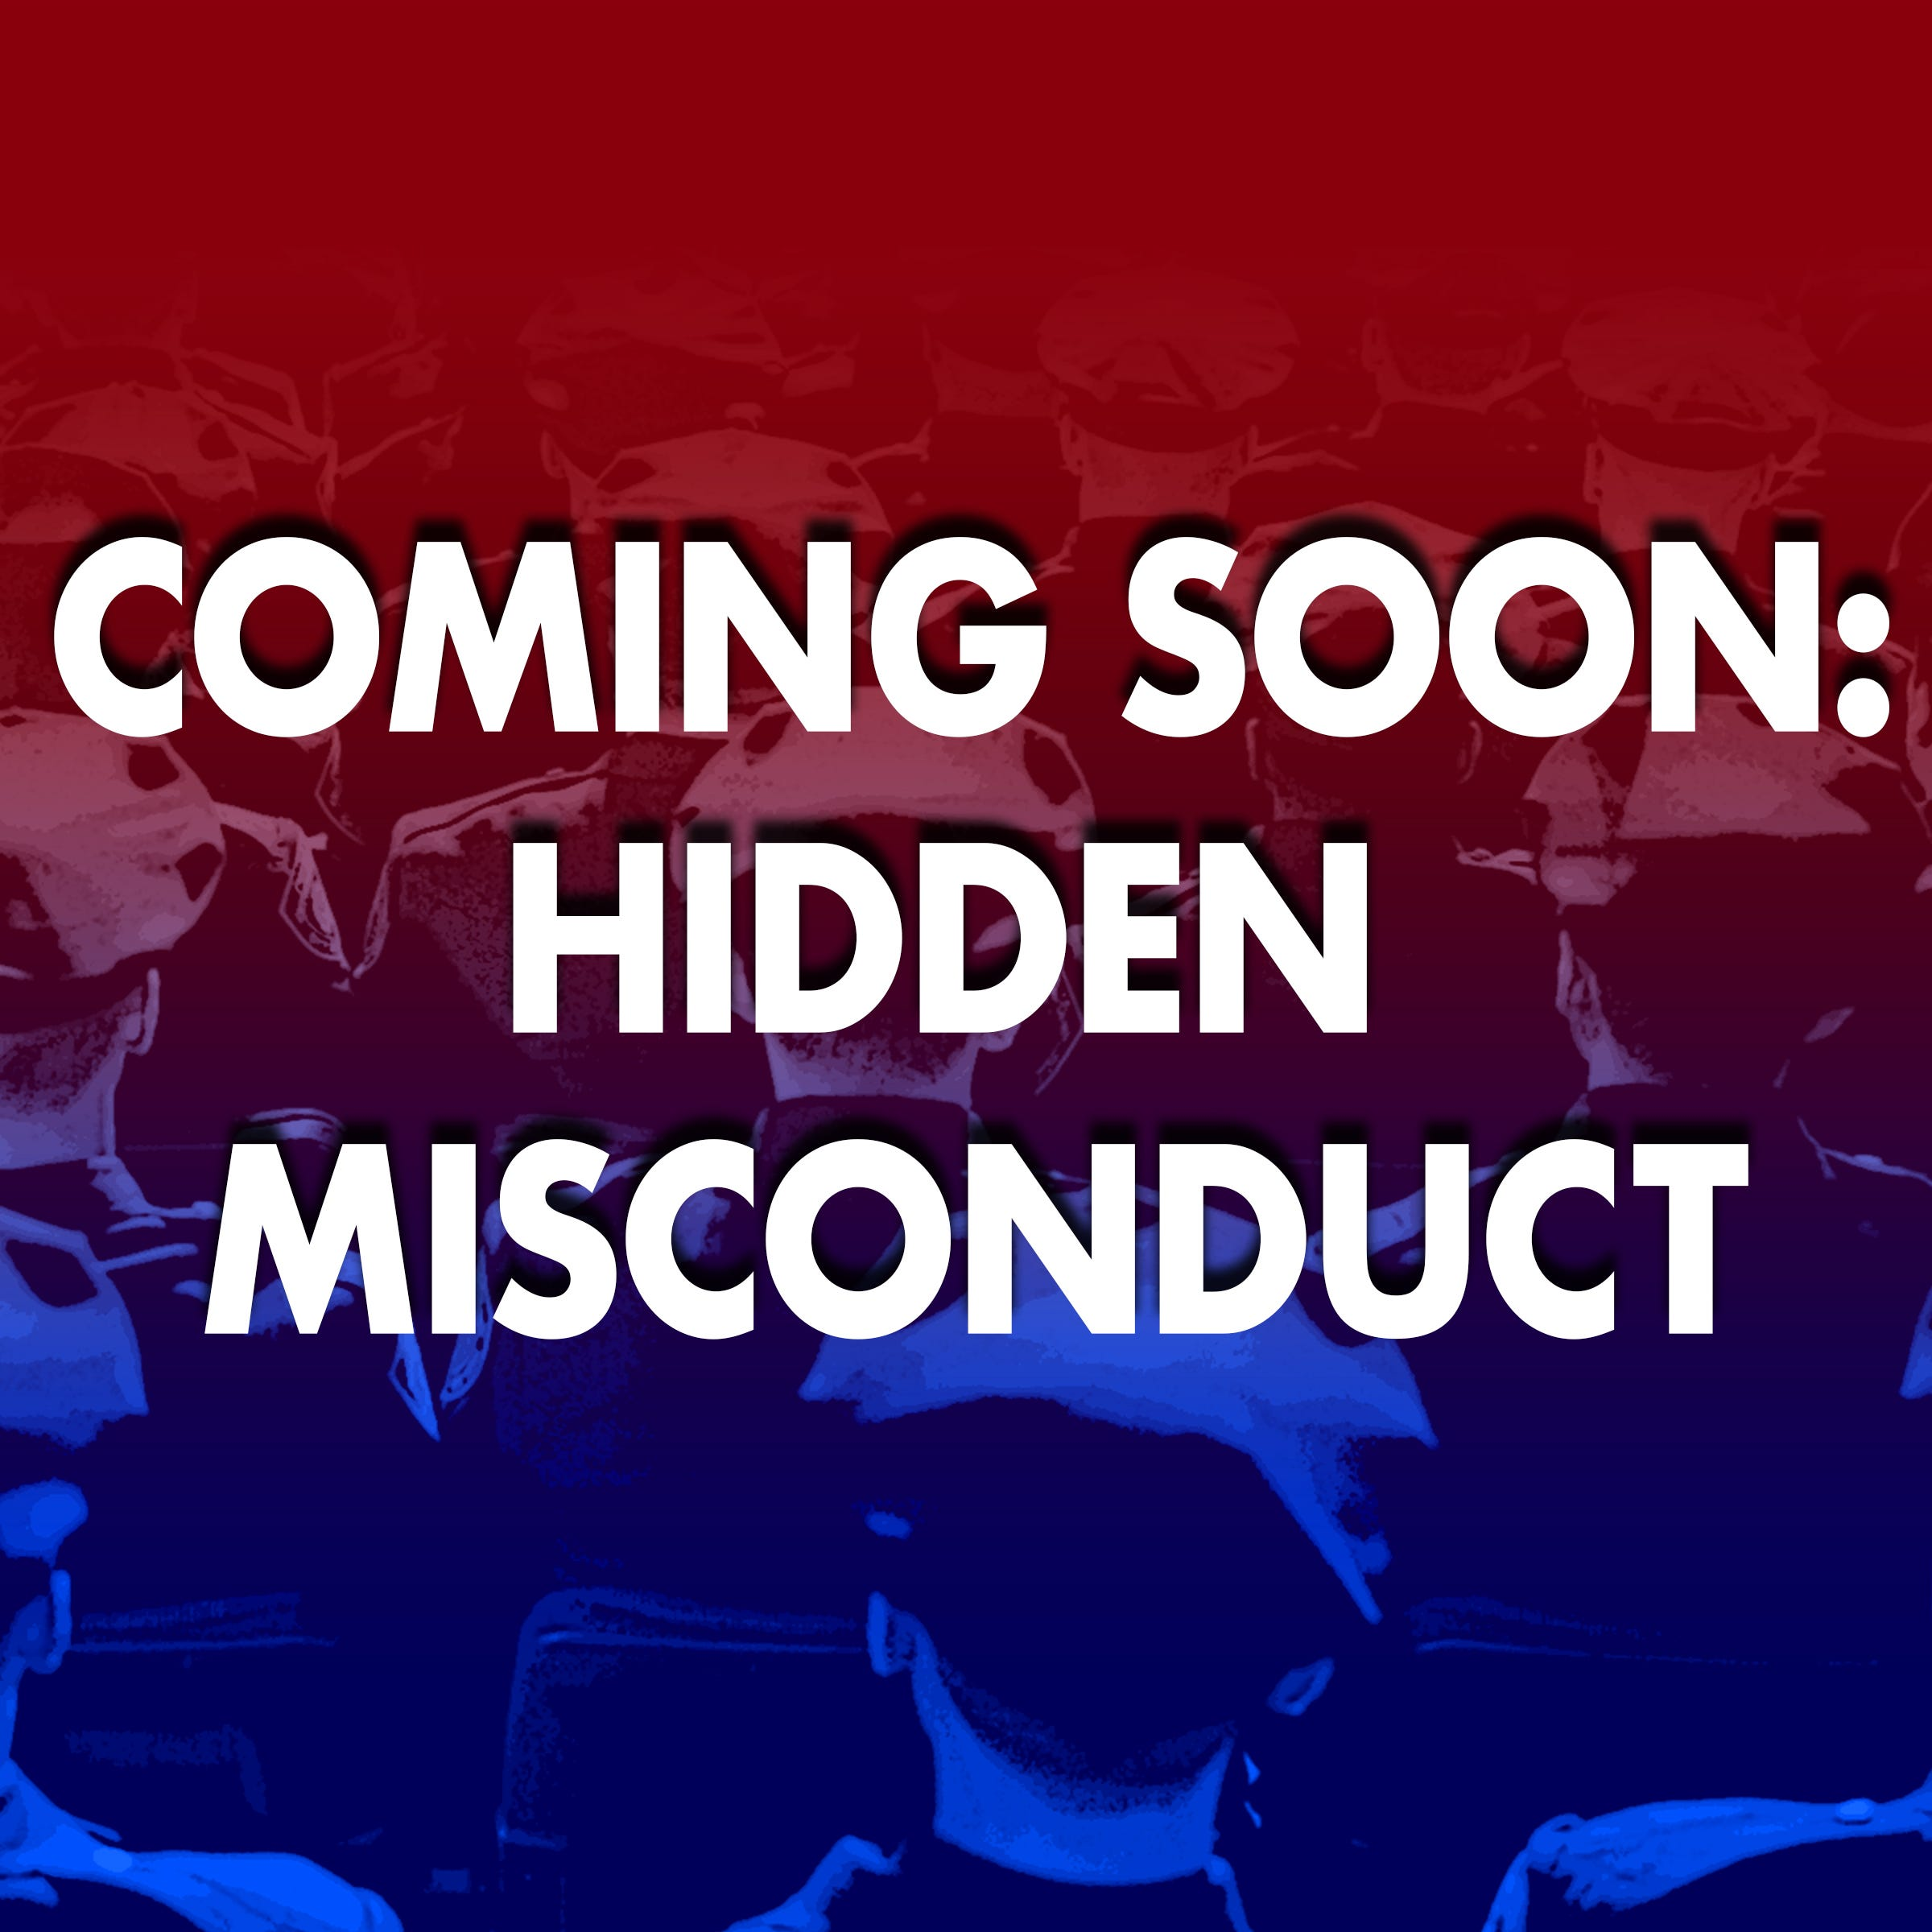 Police misconduct in NJ: Exclusive investigation finds troubled cops still on our streets